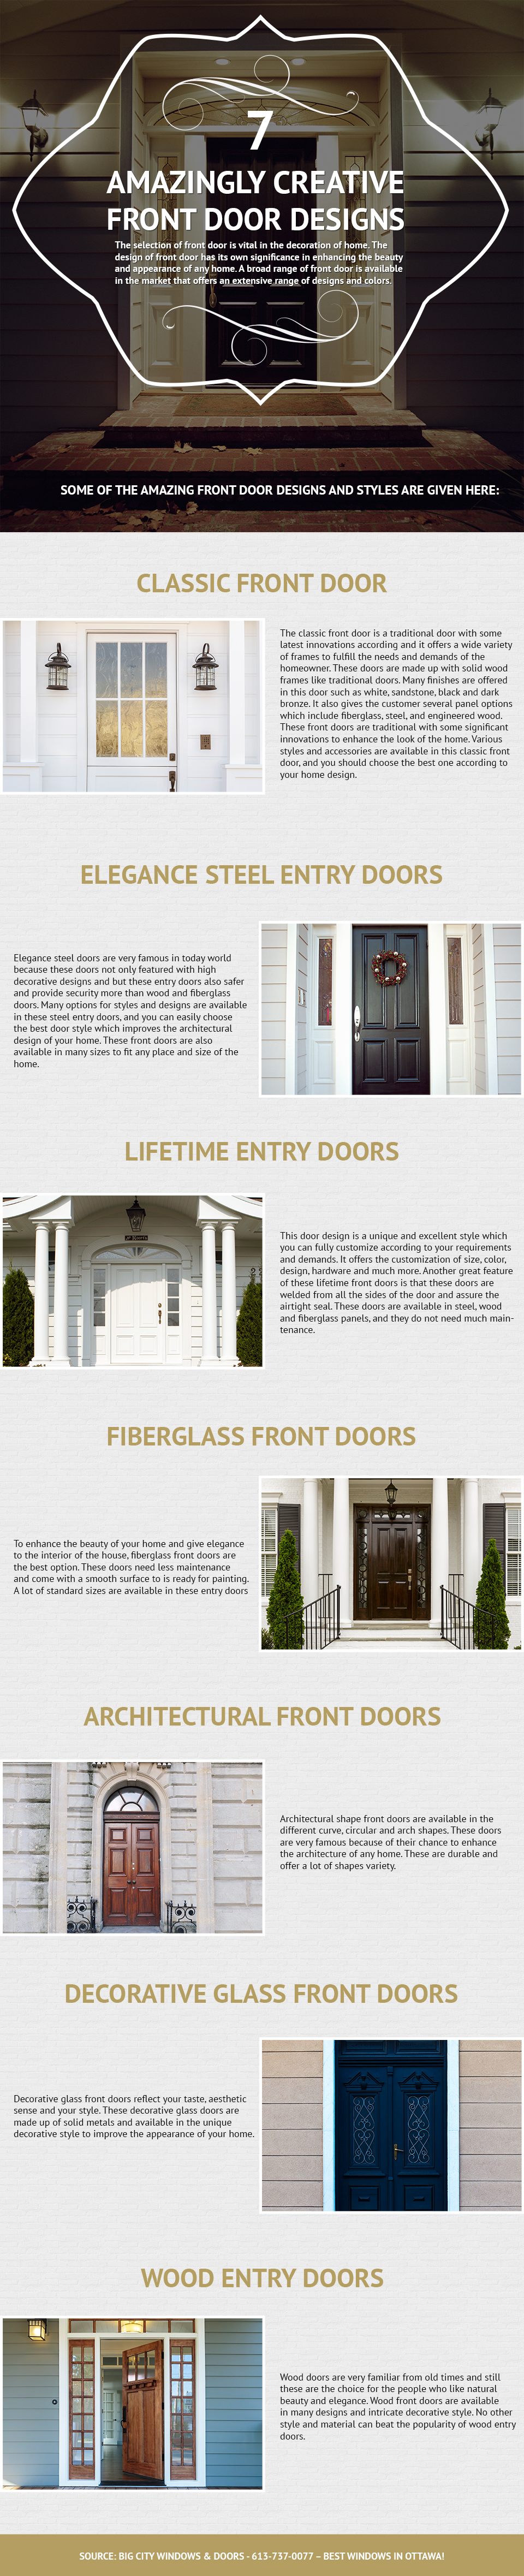 7 Amazingly Creative Front Door Designs - Big City Windows Infographic